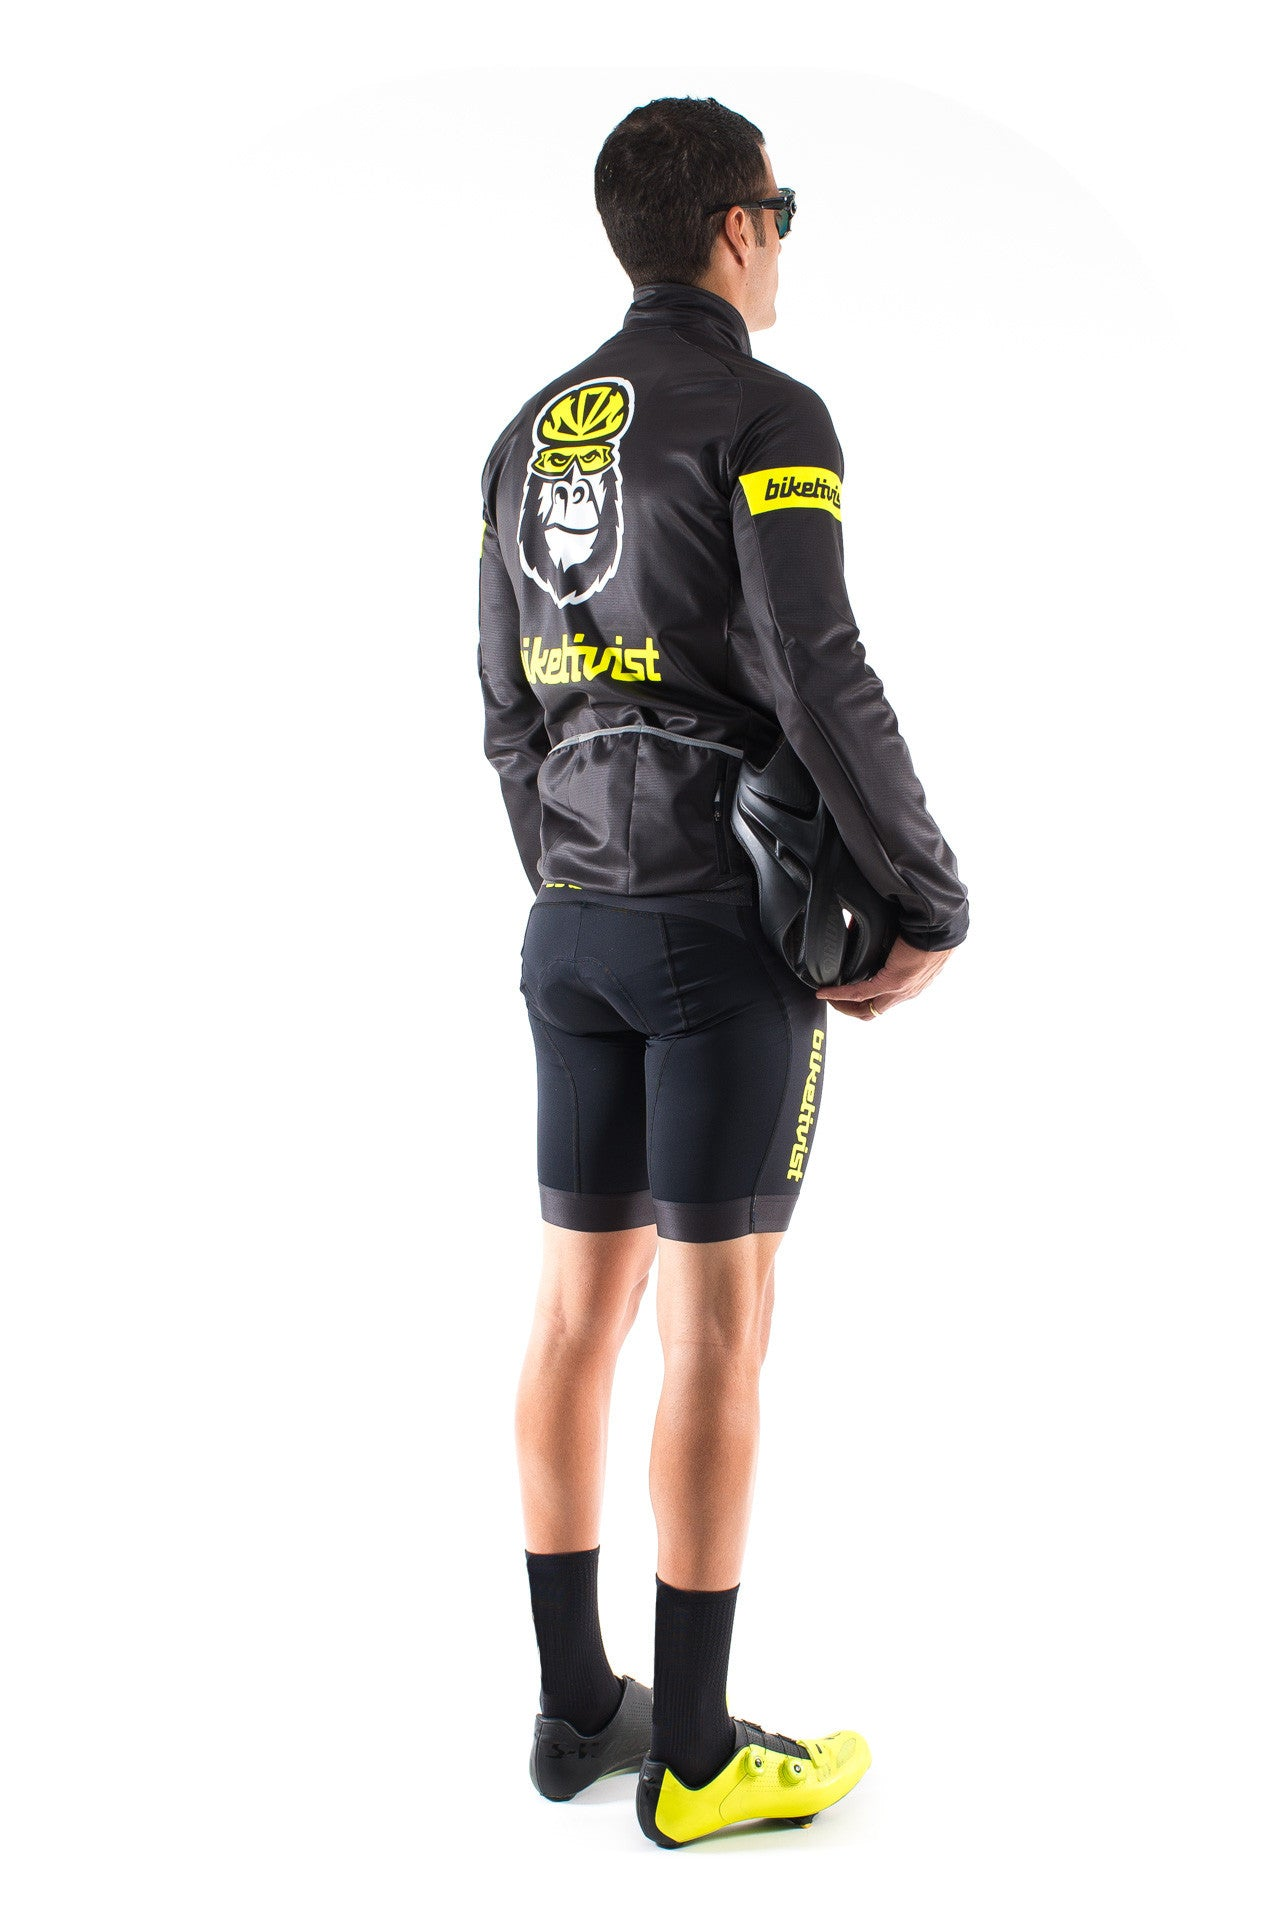 The Biketivist Thermal Jacket